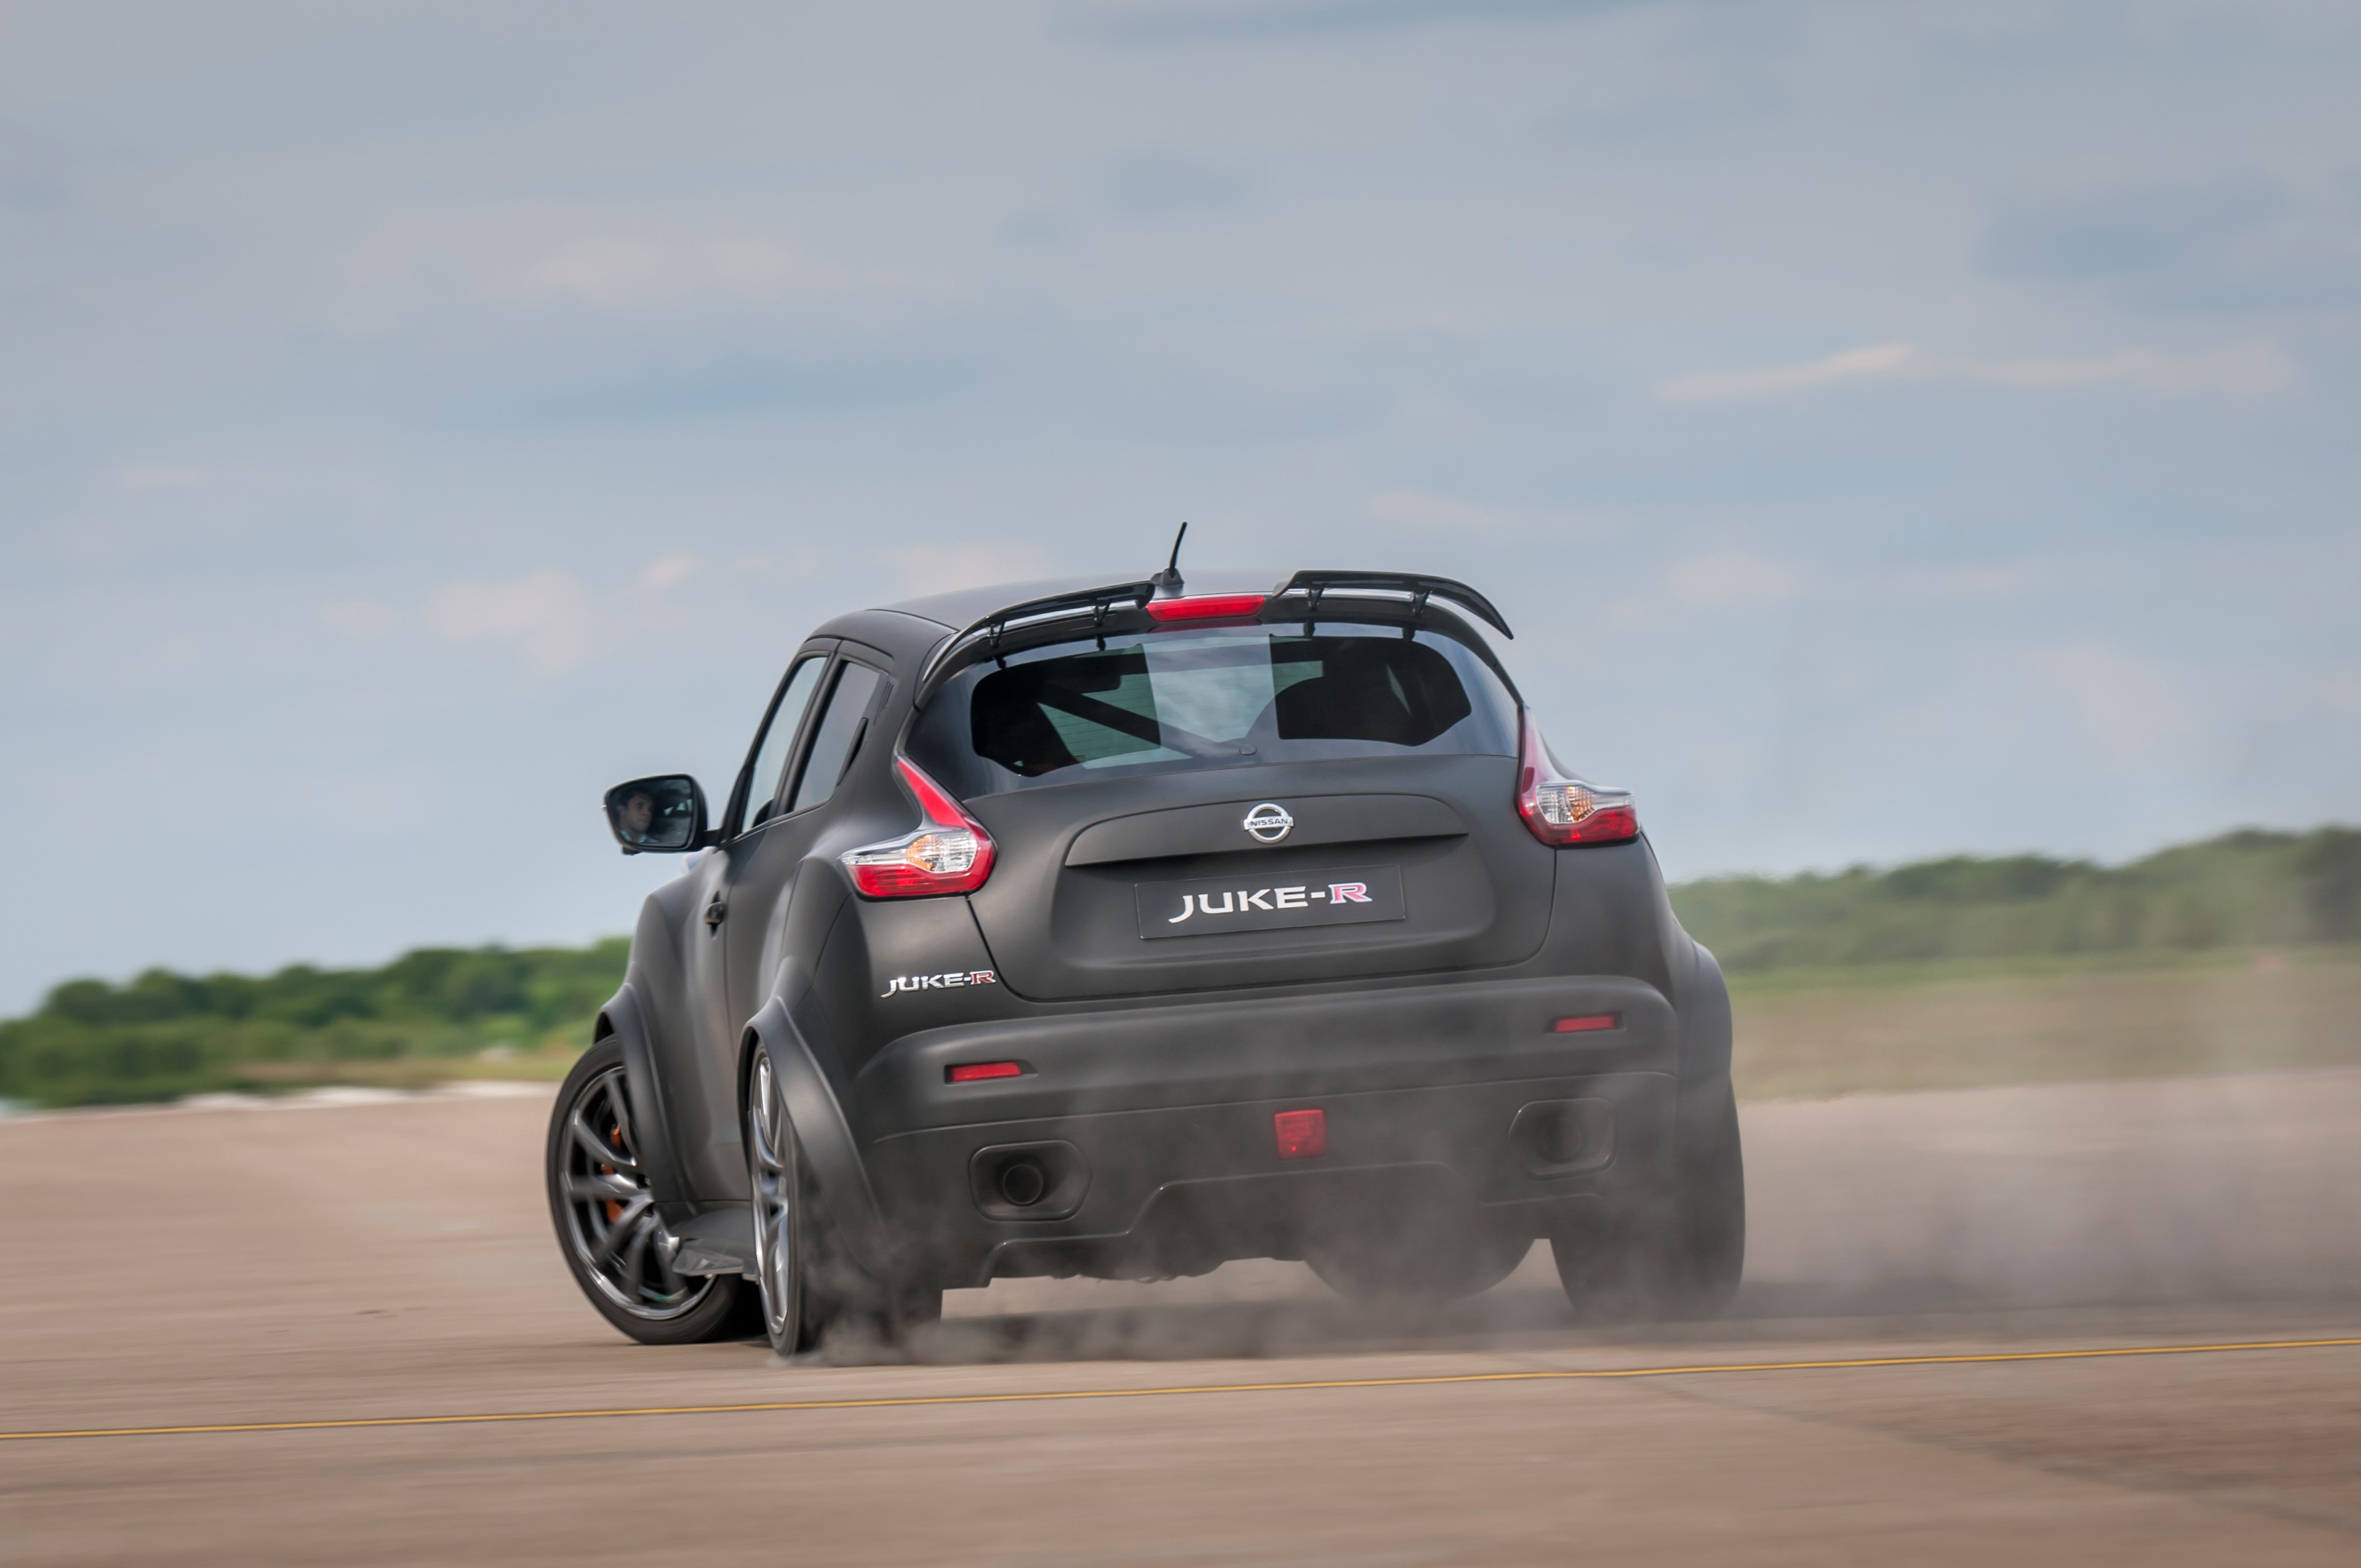 nissan juke r 2 0 battles real gt r nismo in close 1 200 hp race autoevolution. Black Bedroom Furniture Sets. Home Design Ideas